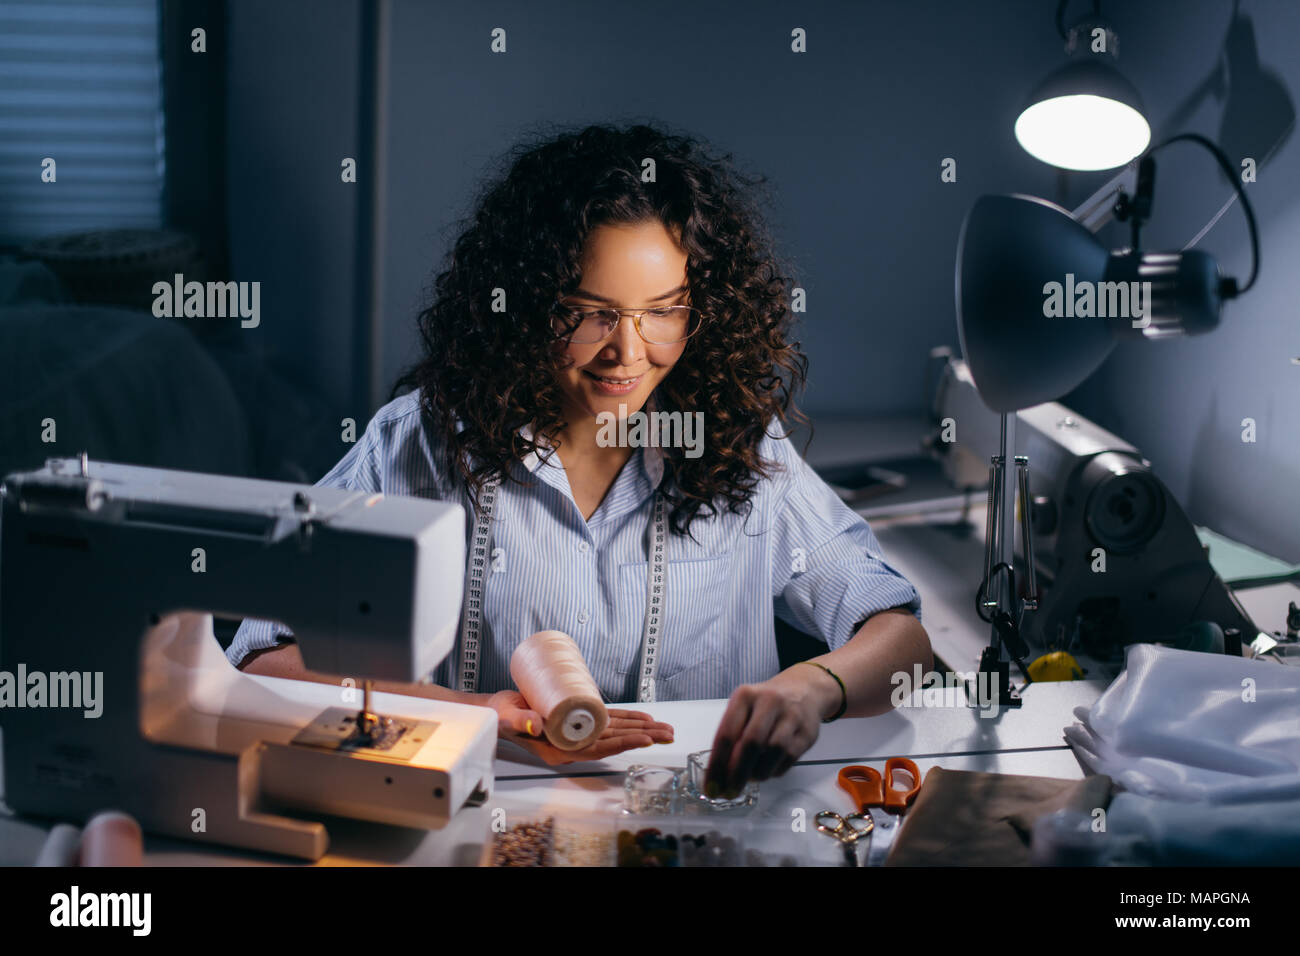 dressmaker is threading beads in front of stitching machine in black room - Stock Image